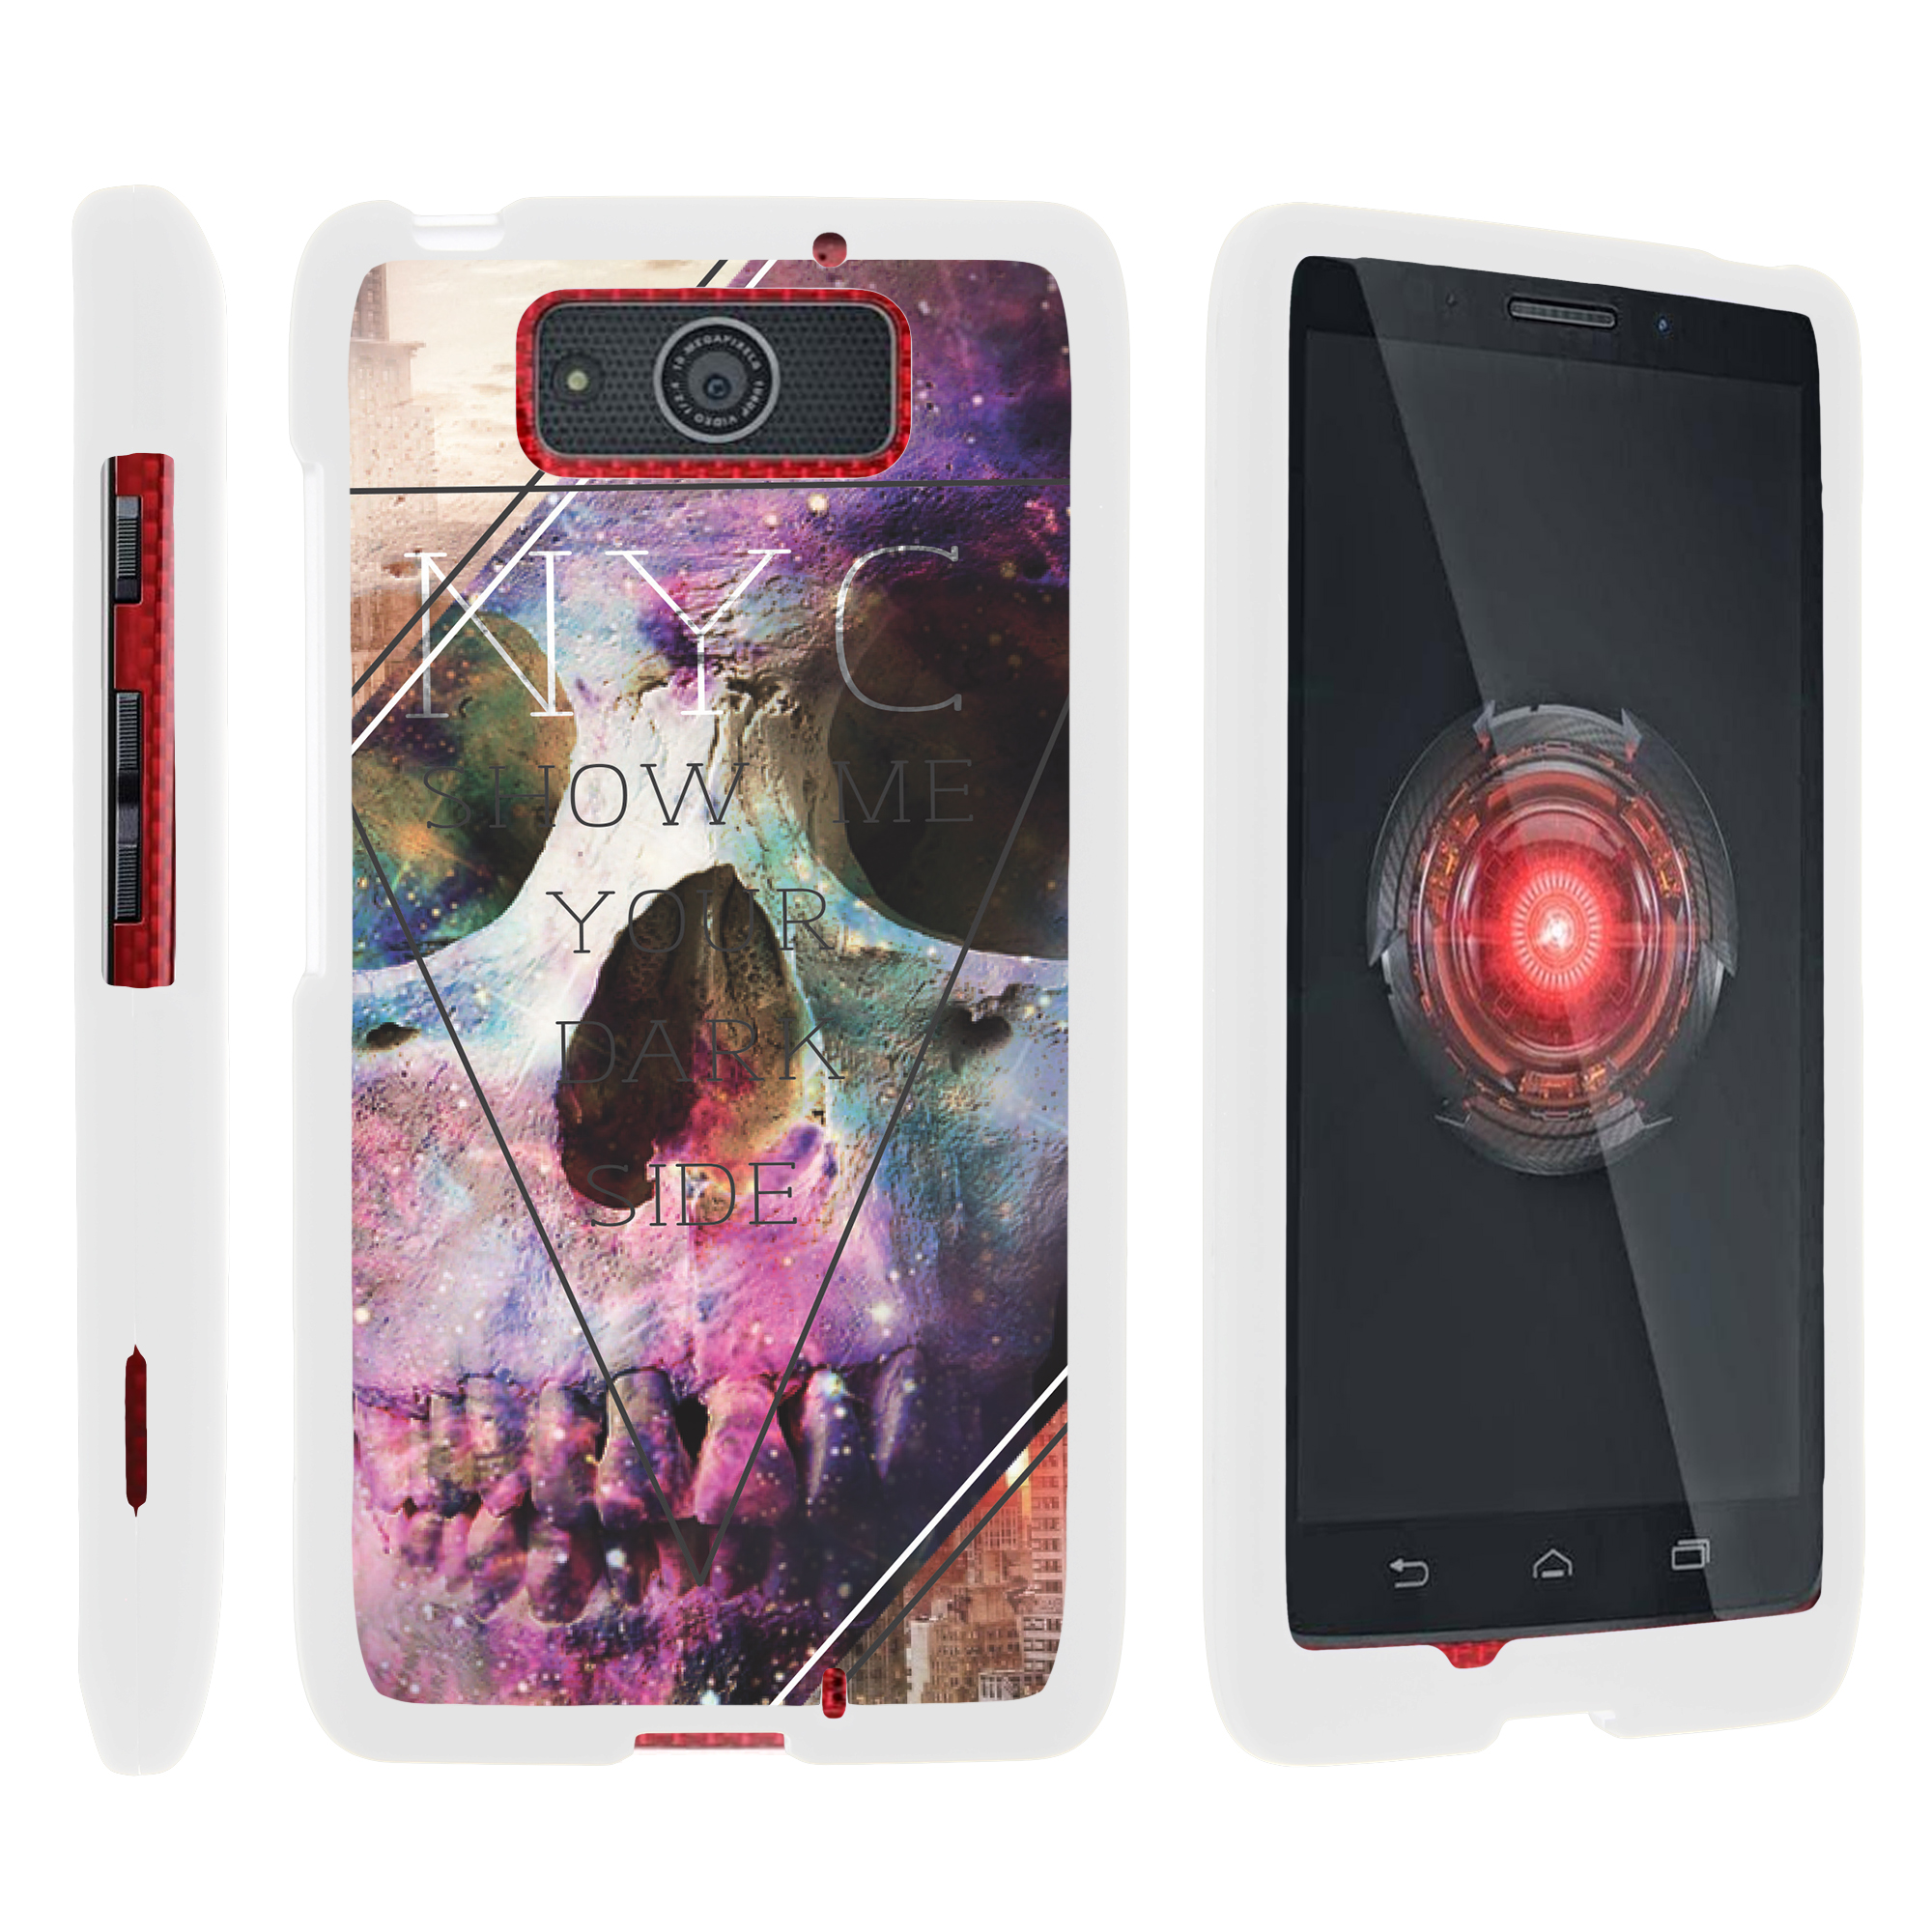 Motorola Droid Ultra XT1080 | Droid Maxx XT1080-M, [SNAP SHELL][White] 2 Piece Snap On Rubberized Hard White Plastic Cell Phone Case with Exclusive Art - Your Dark Side